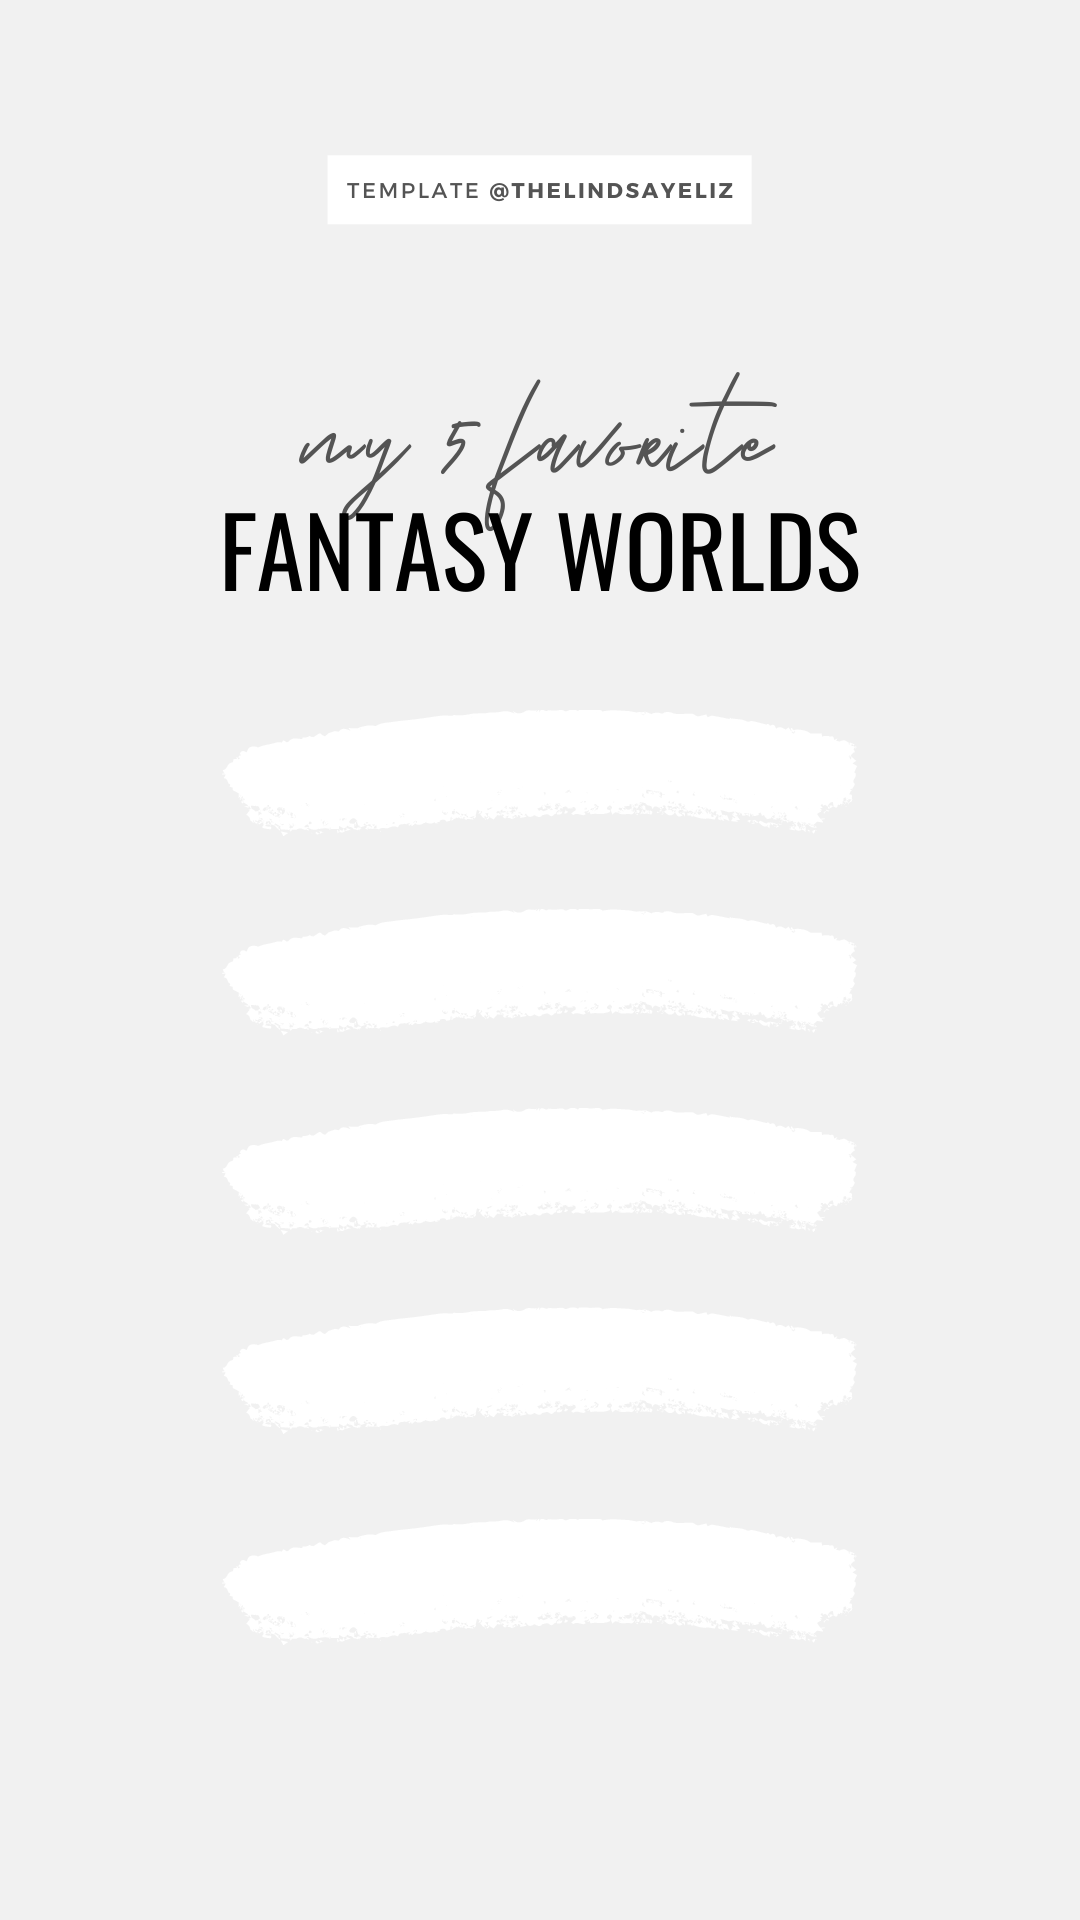 Fill out these fun Instagram story templates for fantasy lovers to share your favorite books, preferences, and reviews with your followers and keep them posted on your current fantasy reads. #bookish #igstories #igtemplates #templates #bookastagram